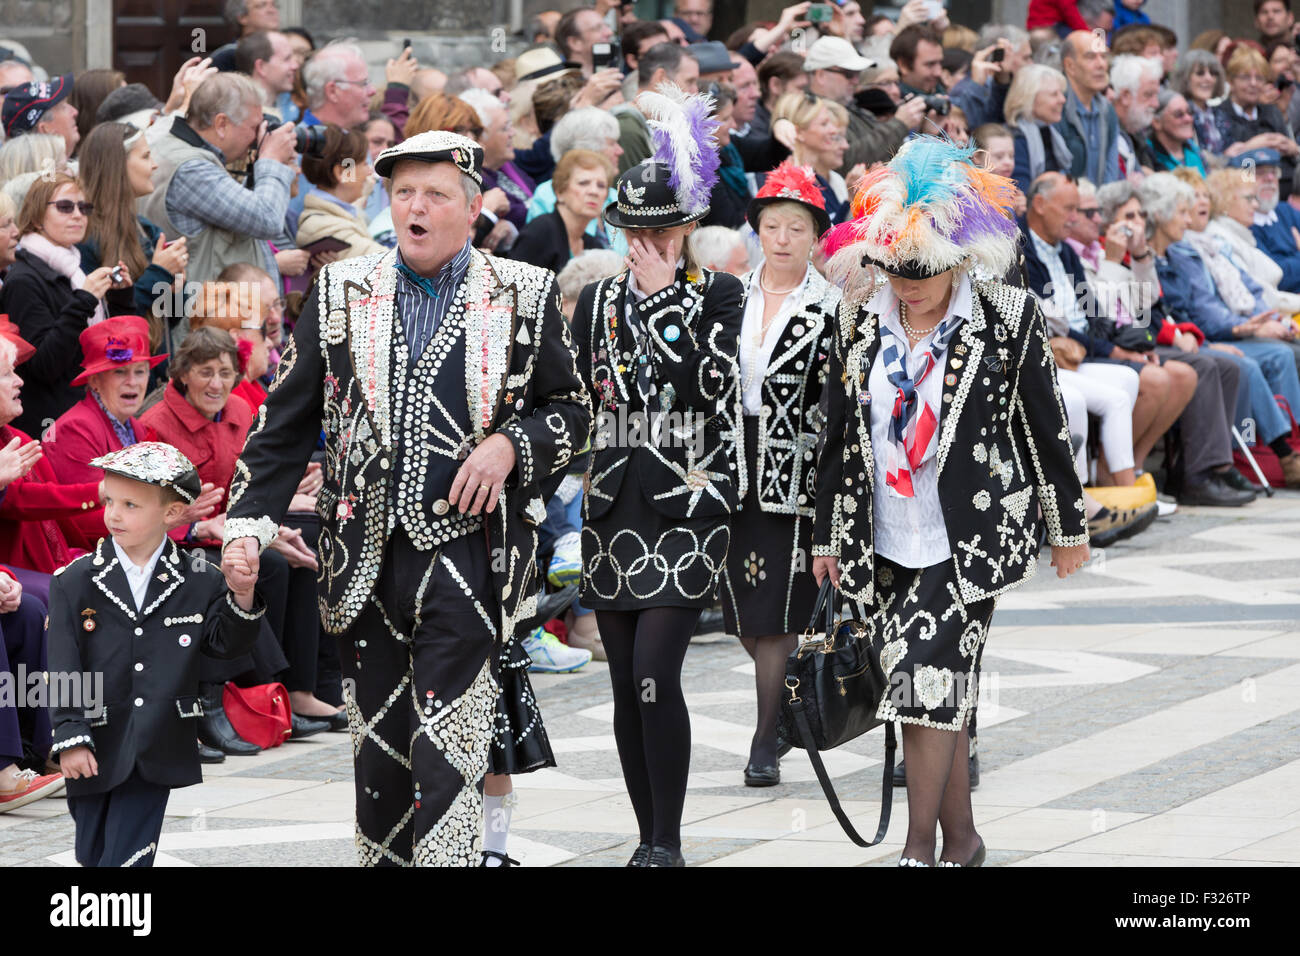 Pearly Kings and Queens celebrate the harvest festival, wearing their traditional pearl-button suits as they parade - Stock Image